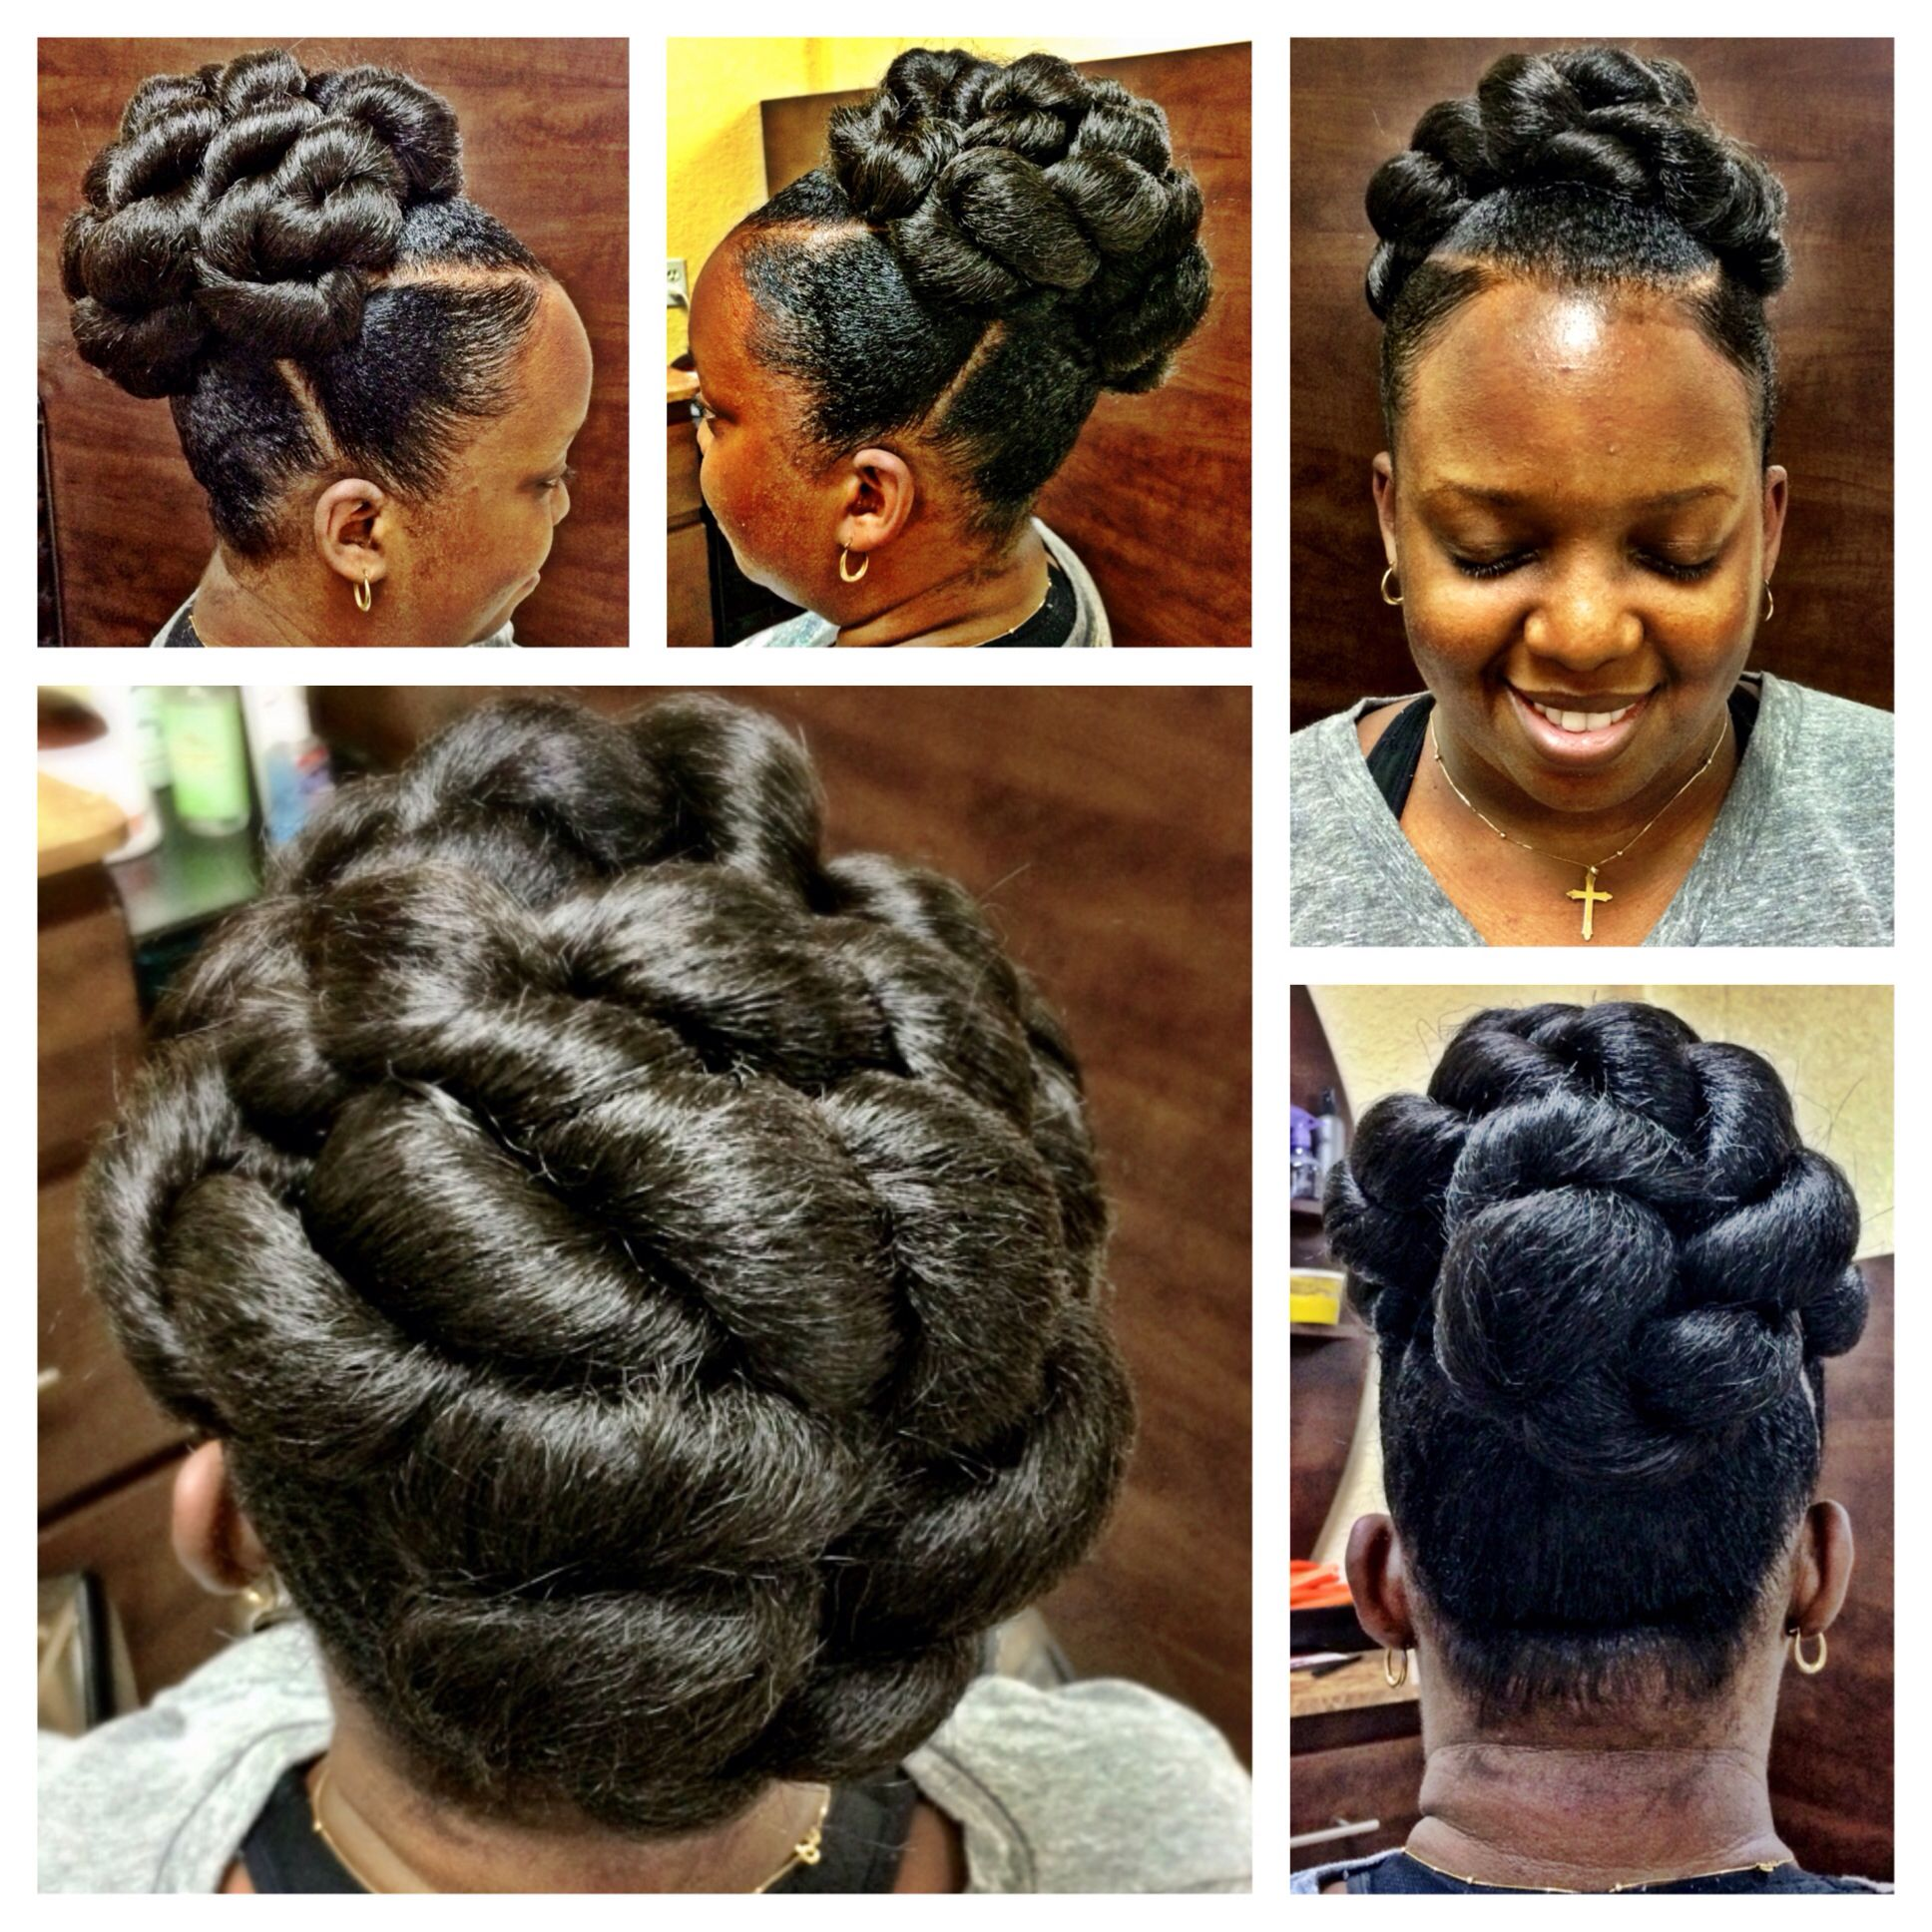 pin by kinks couture on natural hair updo's by kinks couture